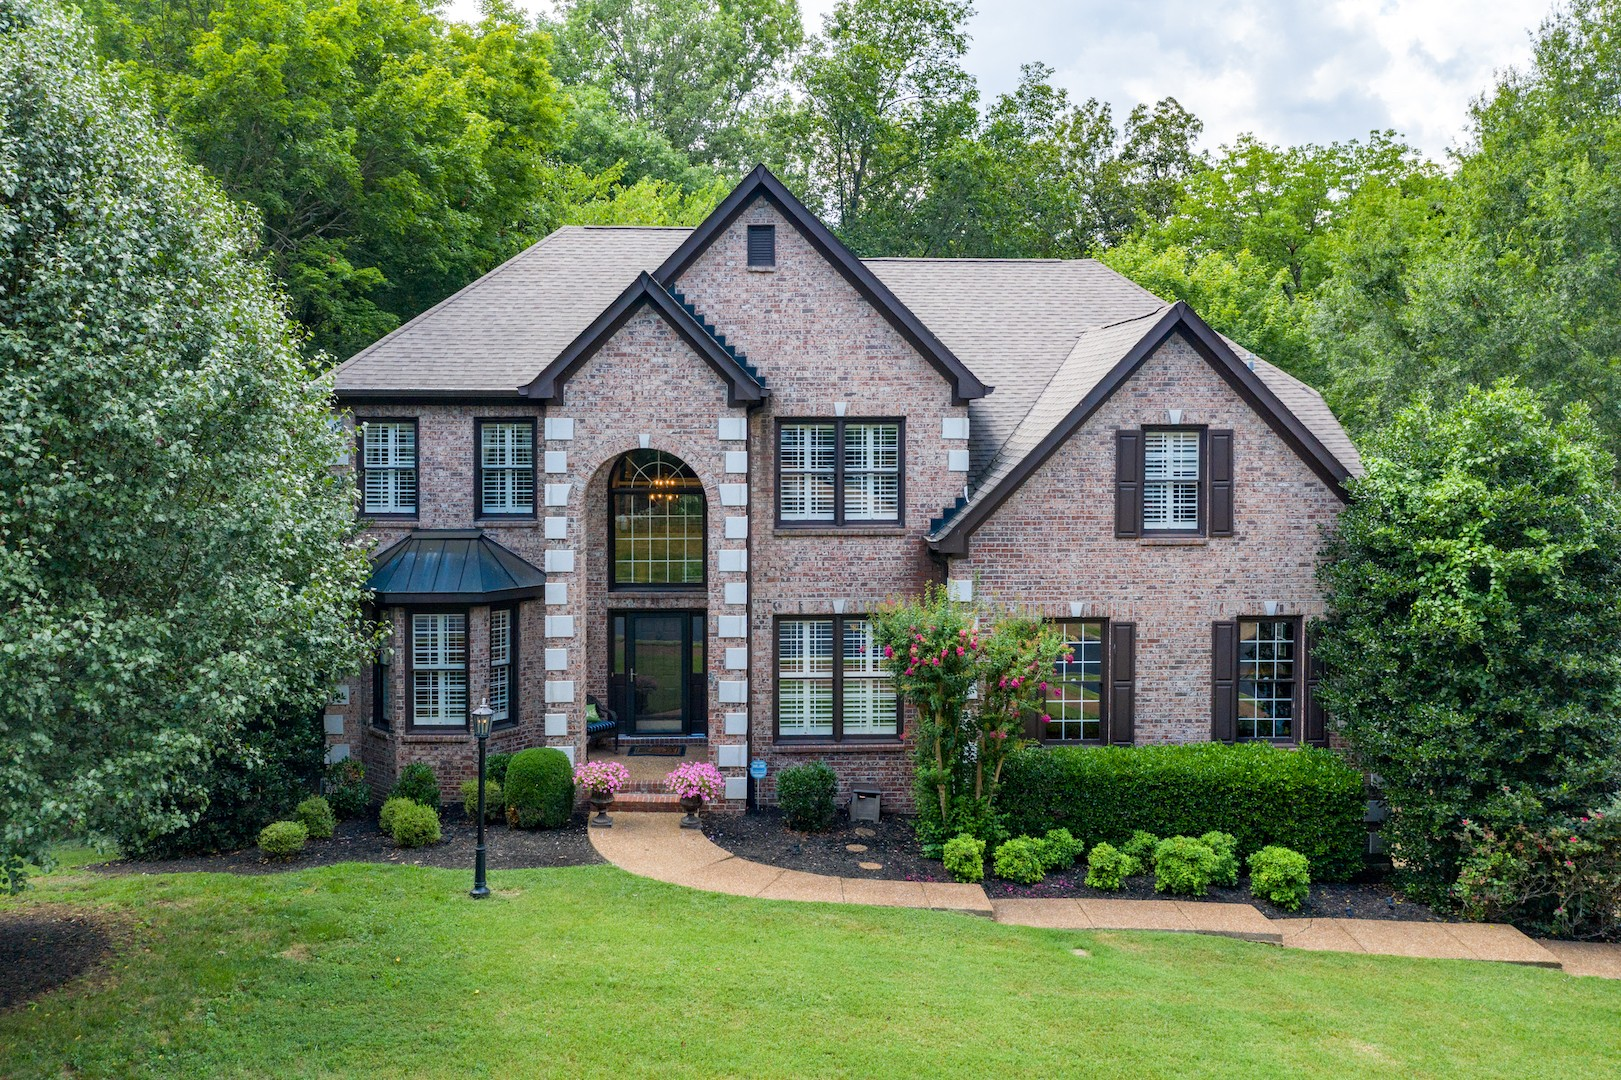 109 Hampsted Ln Property Photo - Franklin, TN real estate listing